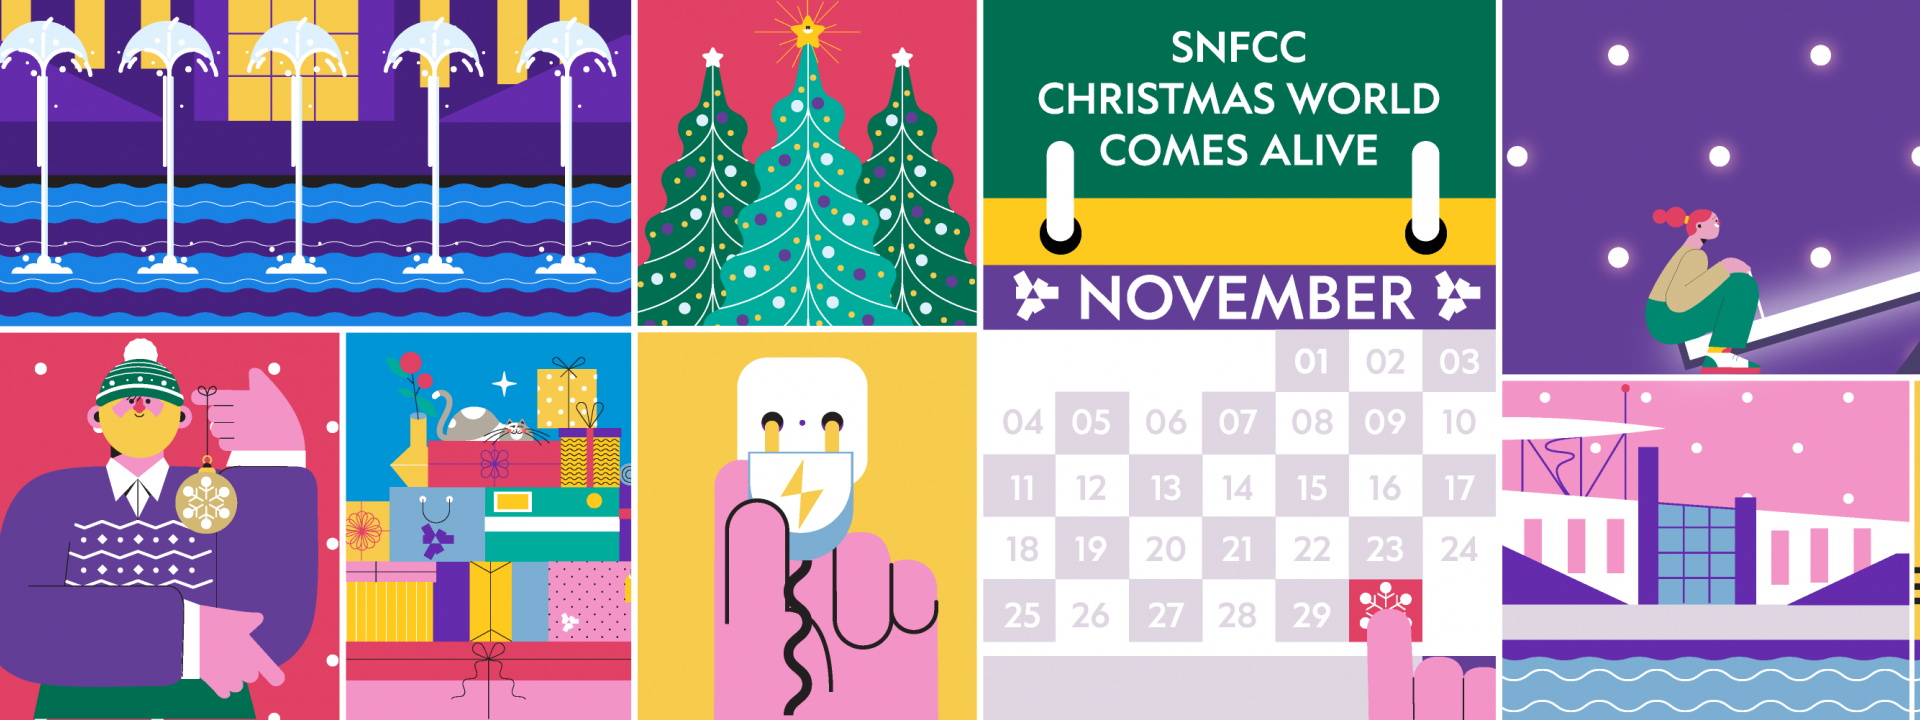 Visual for the SNFCC Christmas World